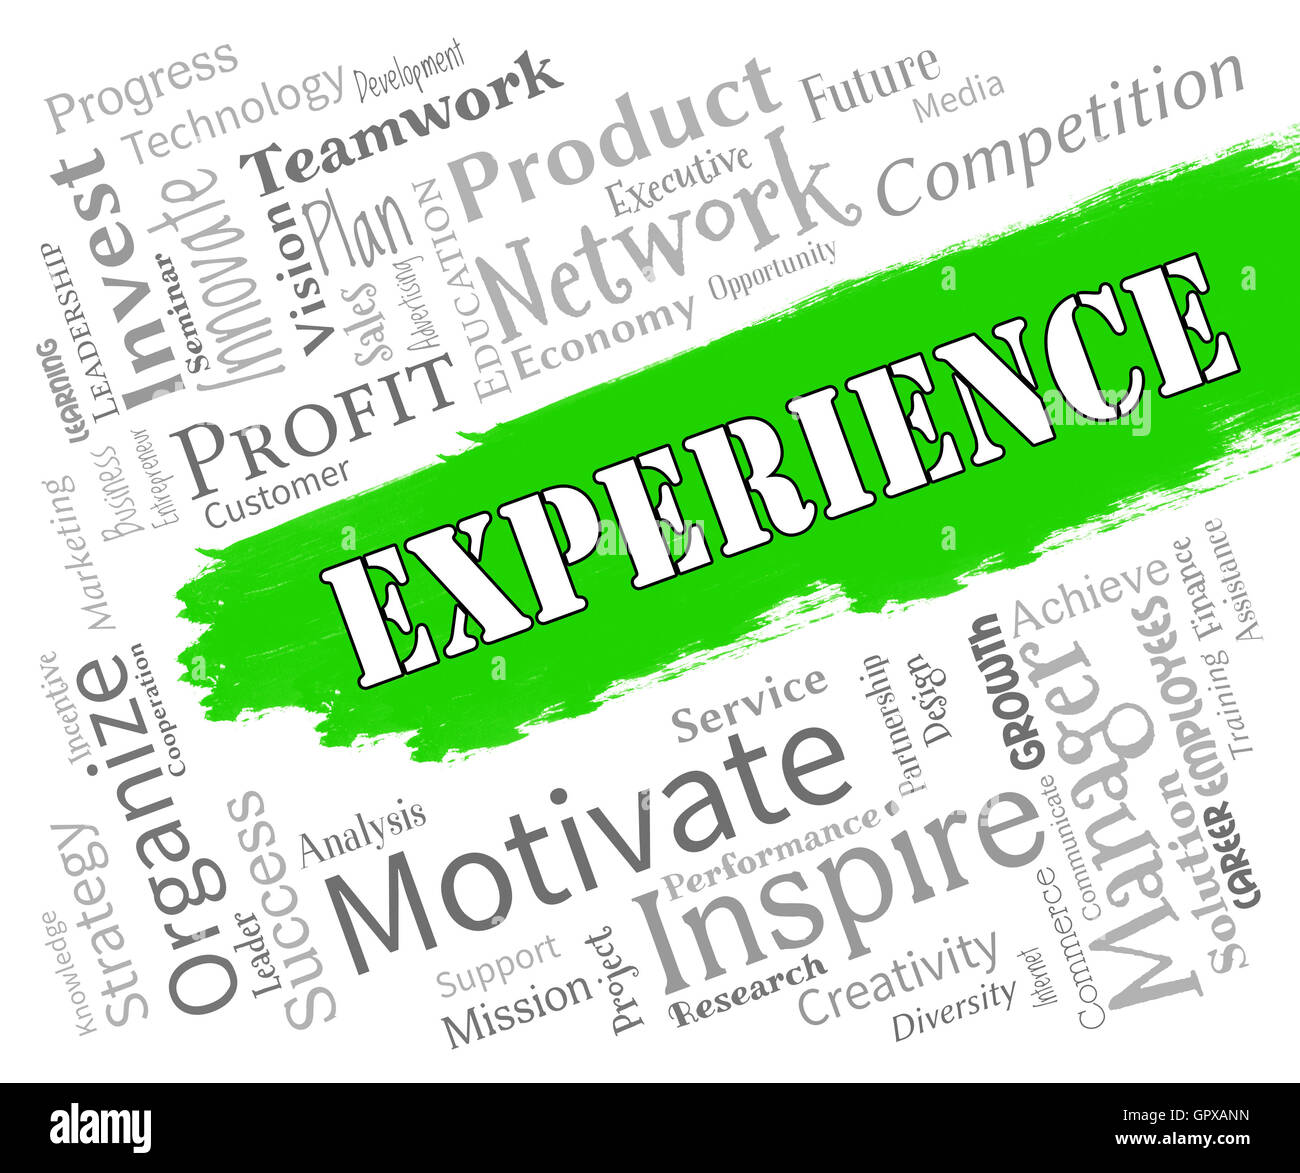 What is the experience word meaning 2